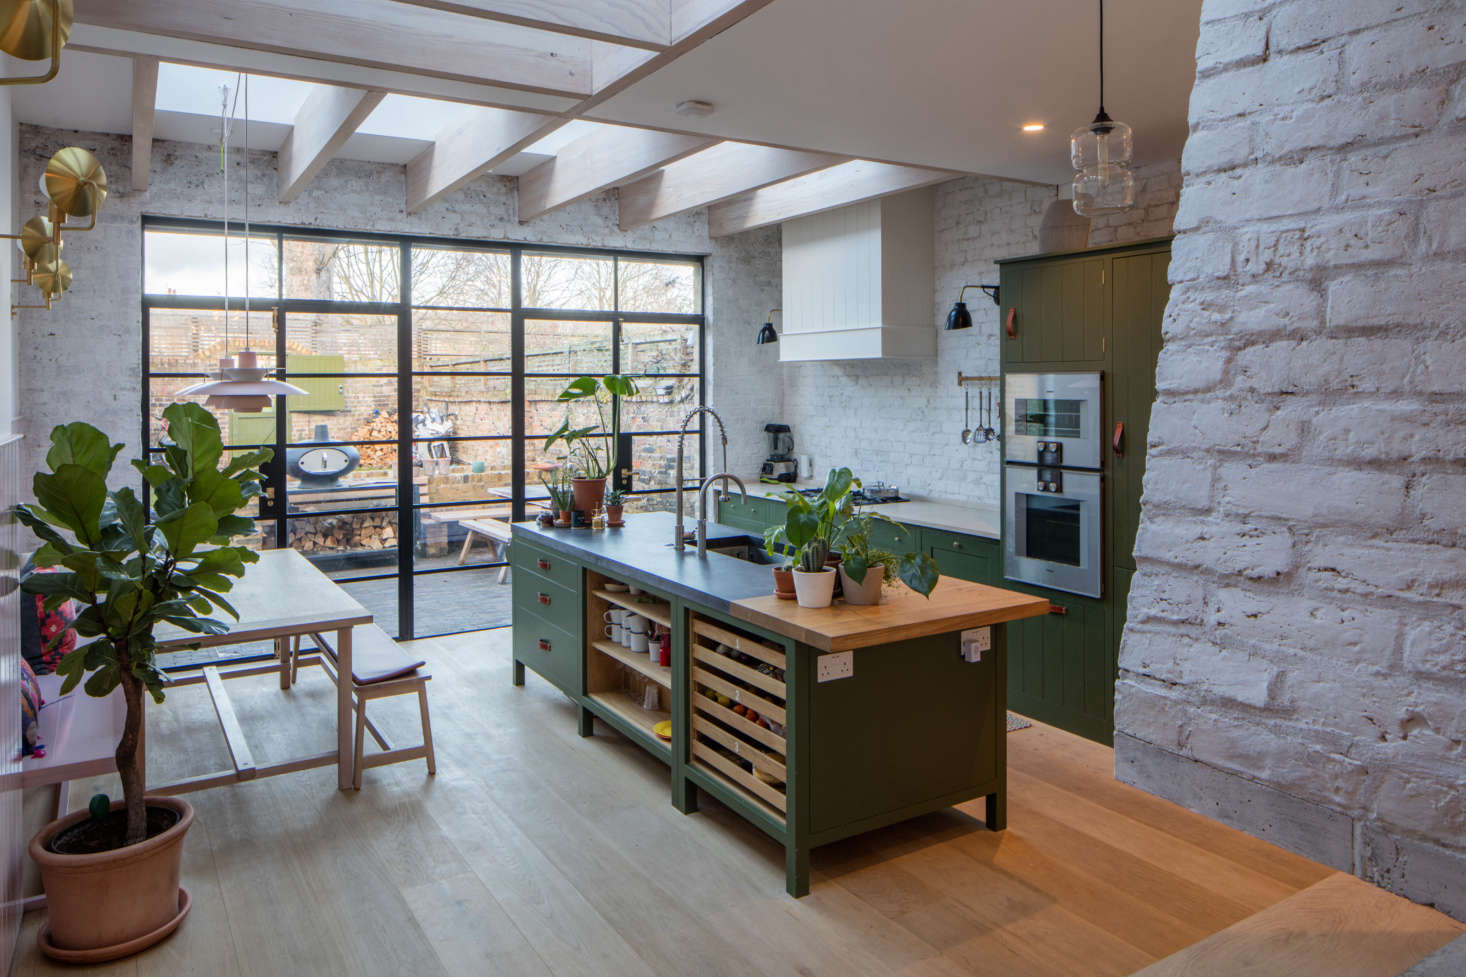 The kitchen, with steel-framed doors that lead directly into the terrace garden on the same level.